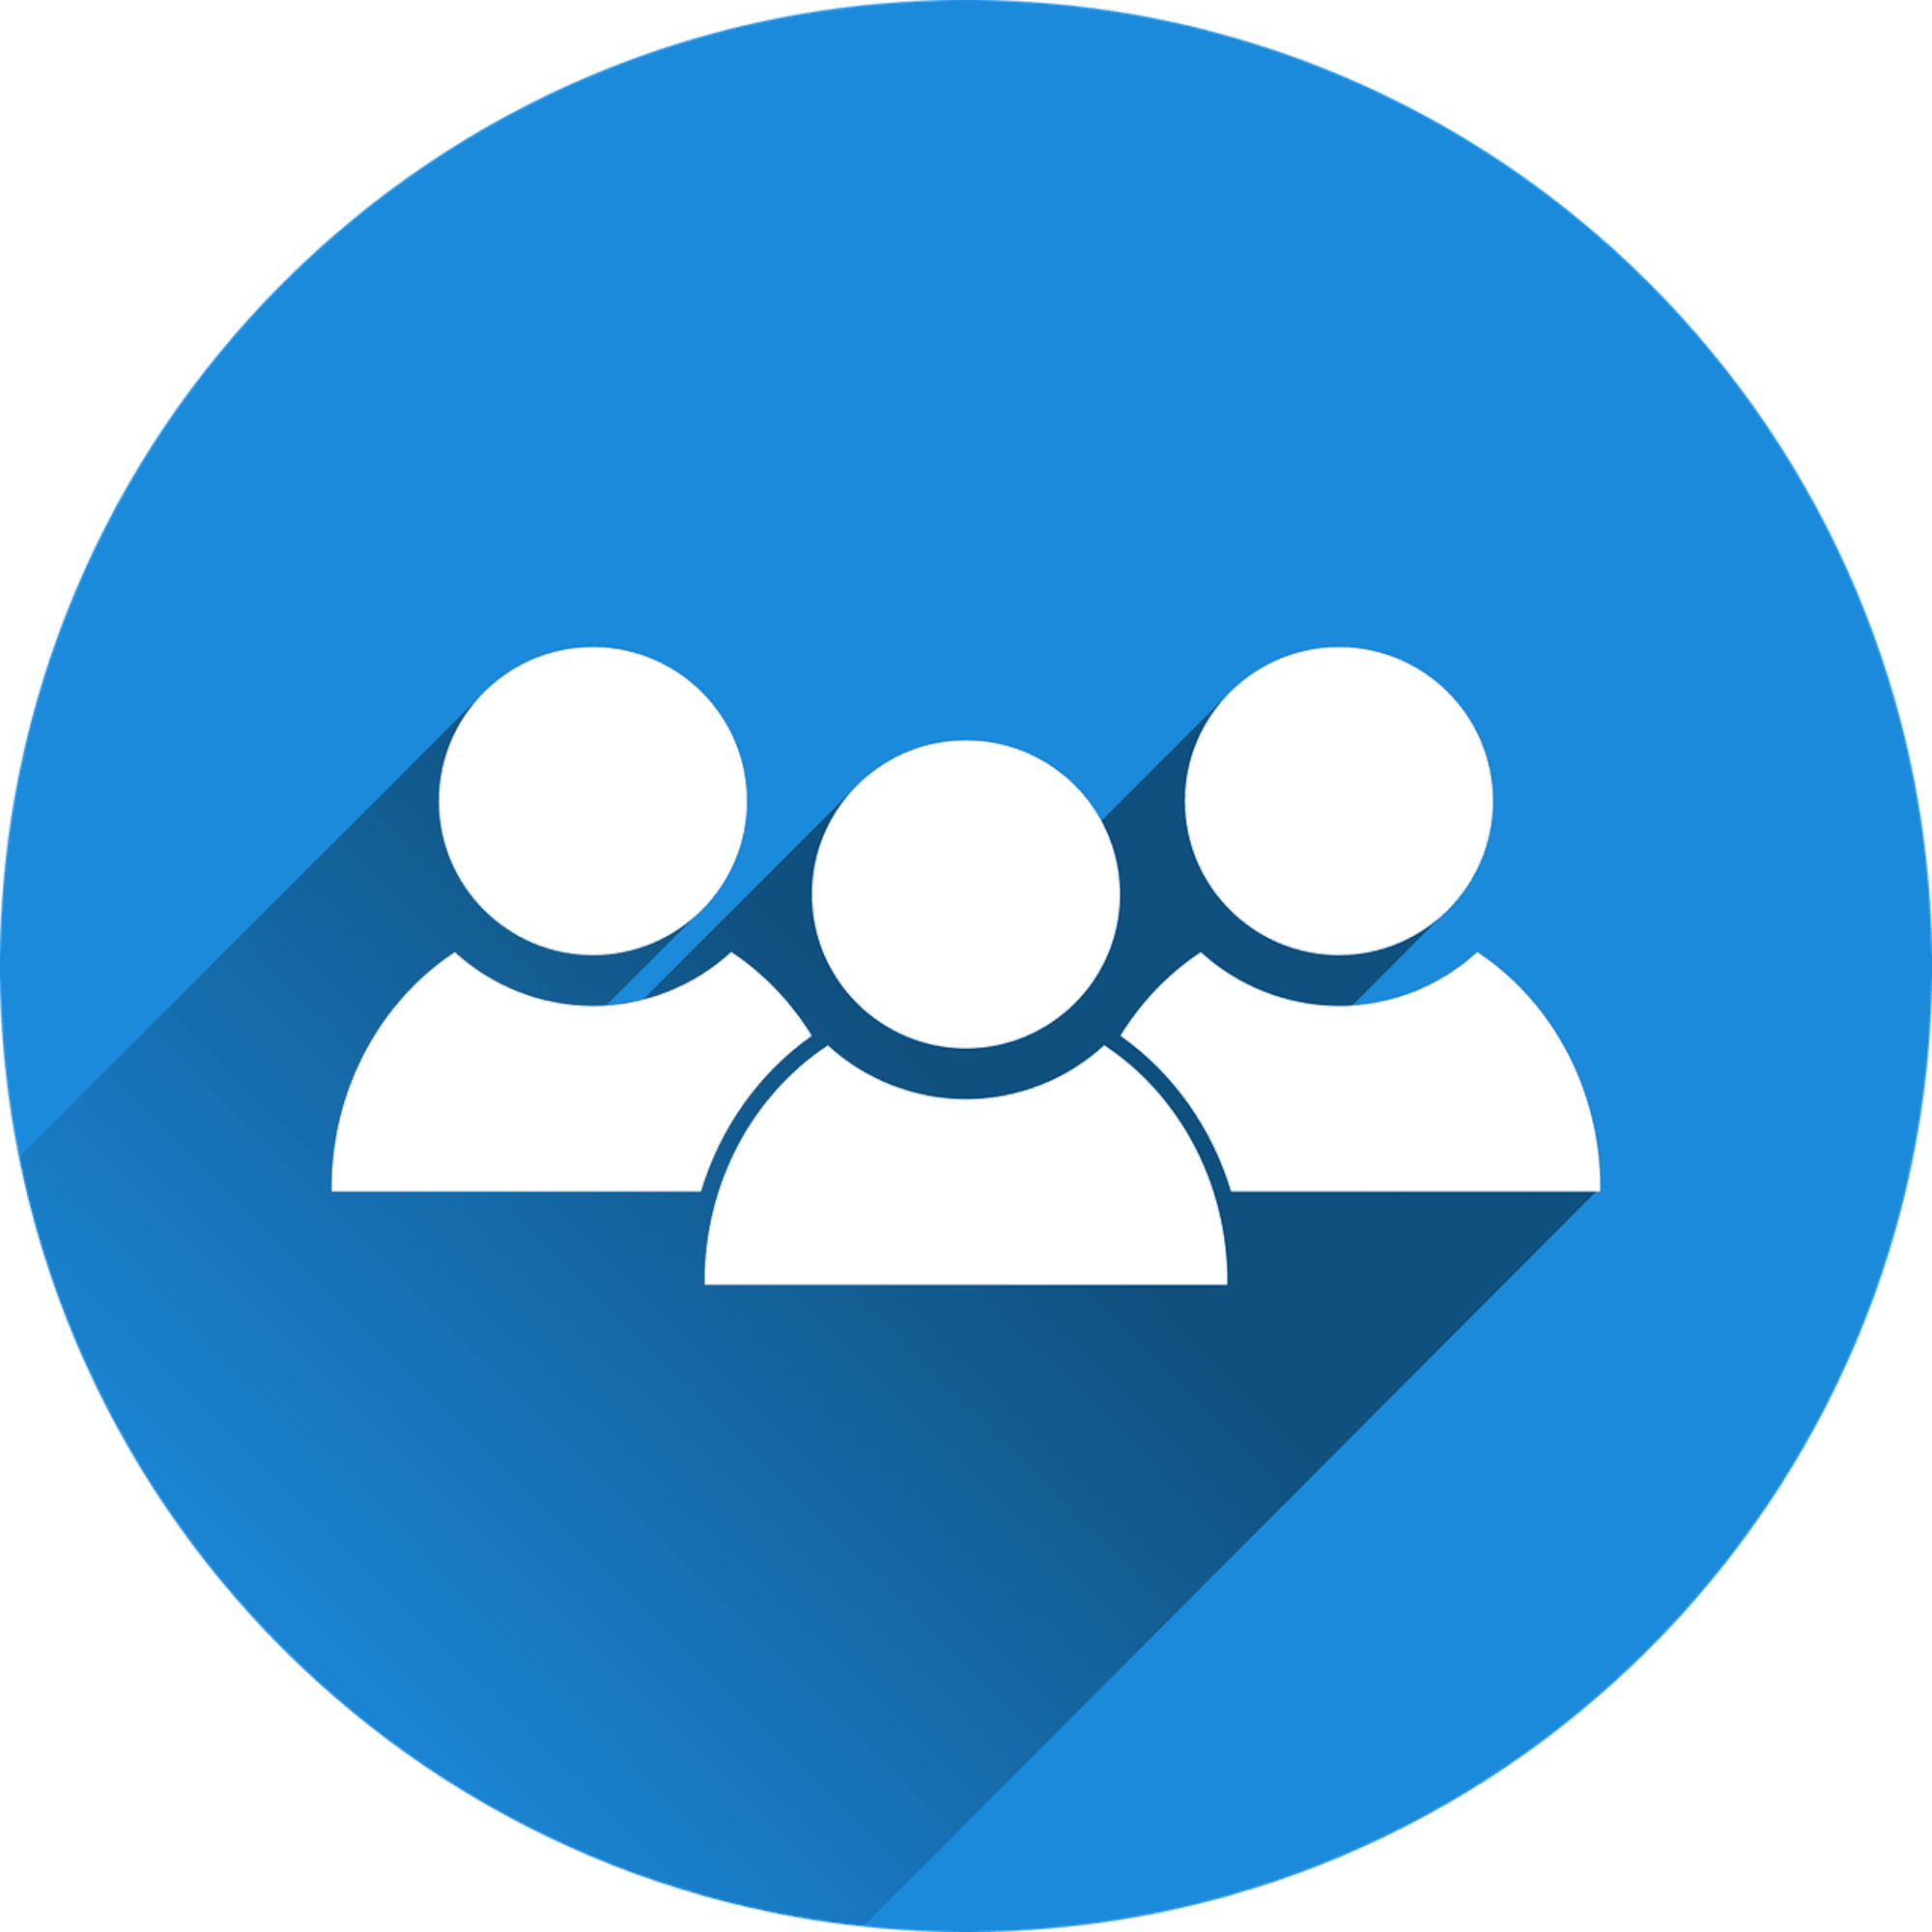 PowerShell: Getting (and Exporting) AD Group Members